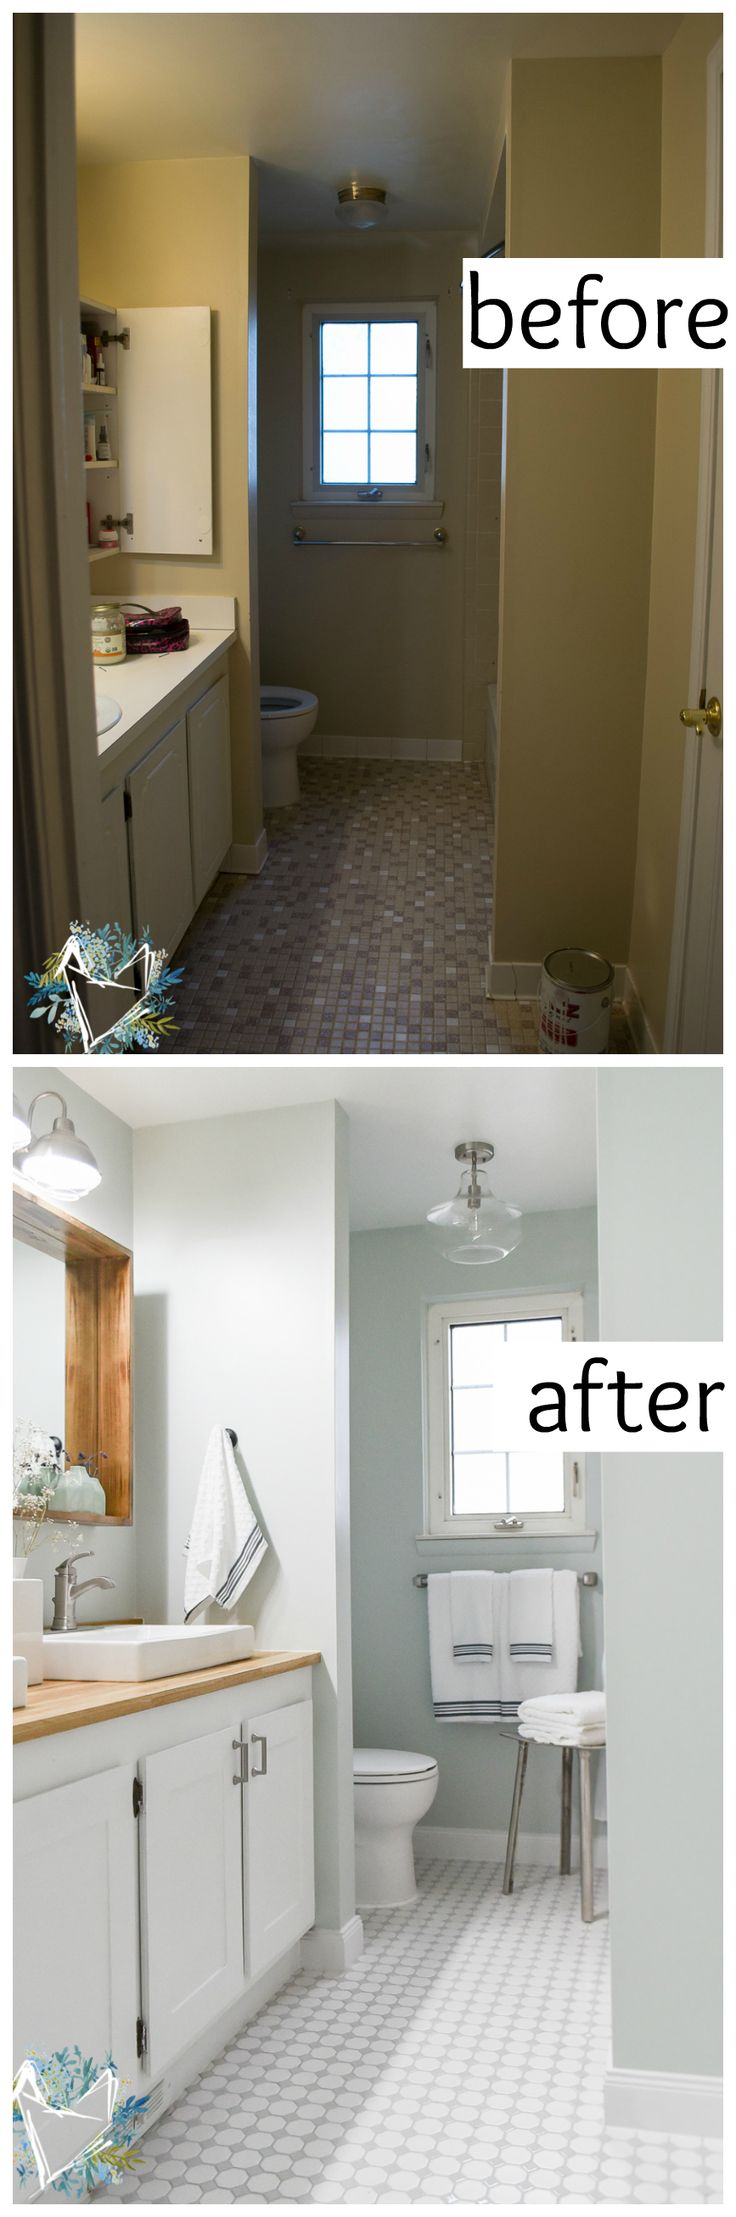 Best 25+ Budget bathroom remodel ideas on Pinterest | Guest bath ...